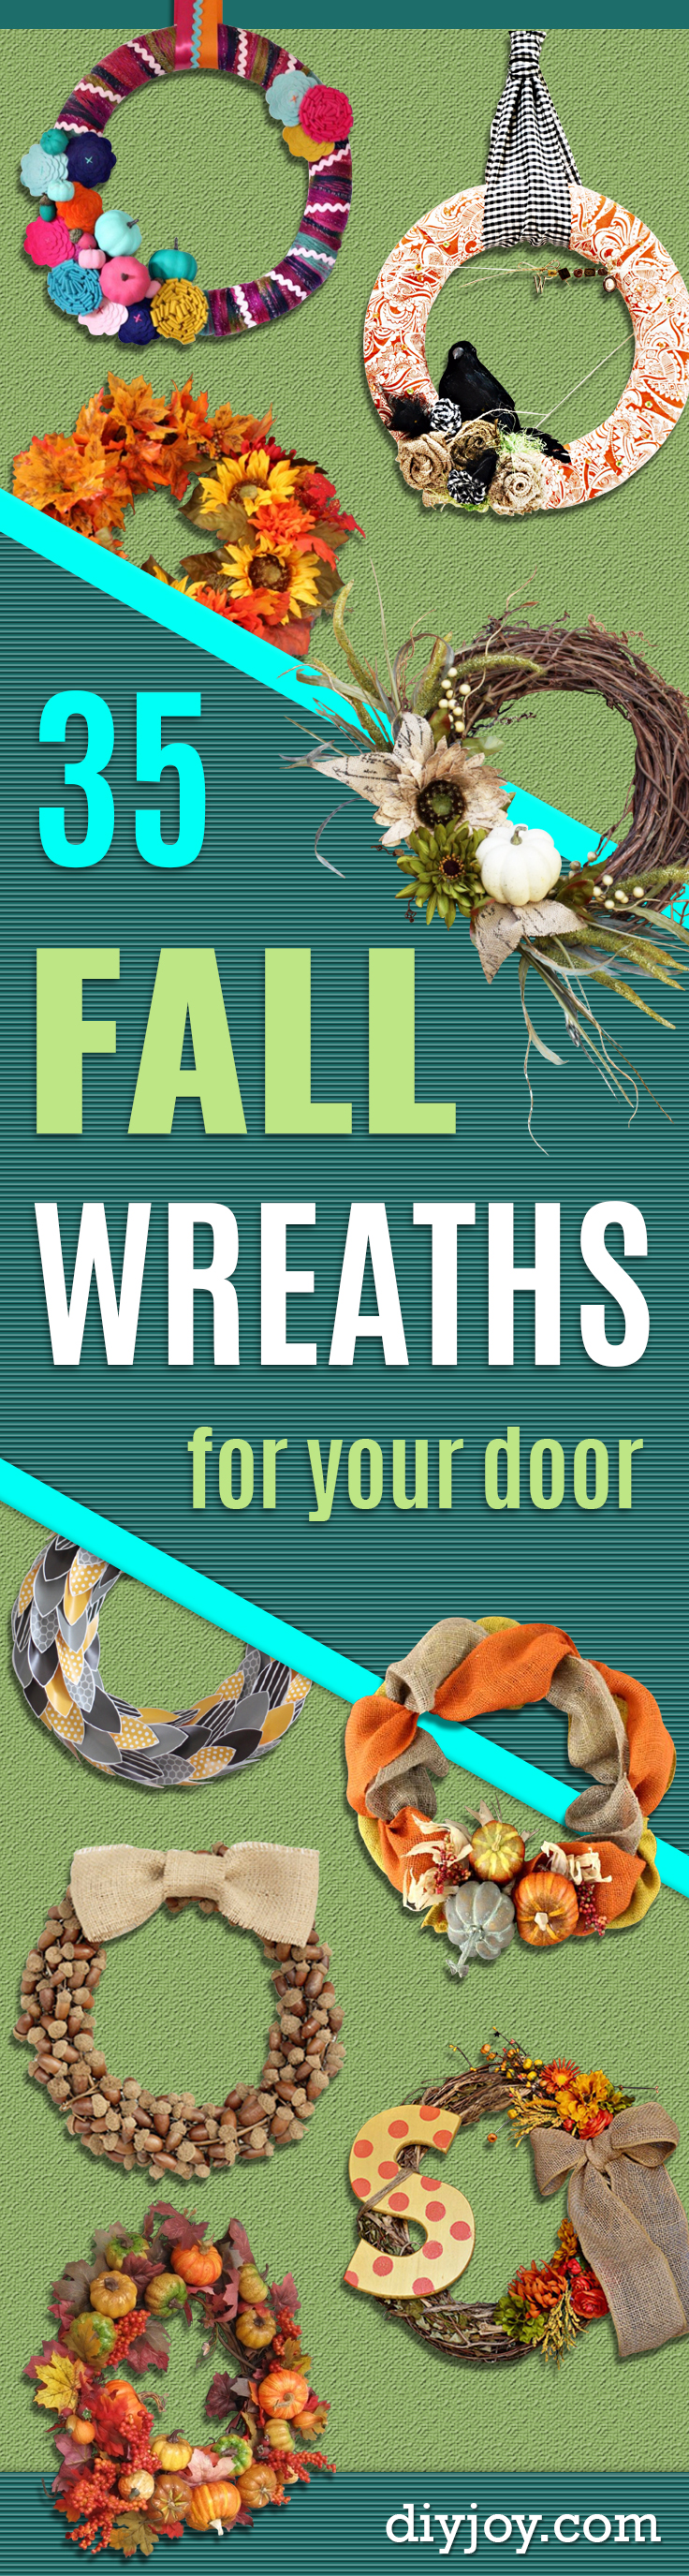 35 Fall Wreaths for Your Door -  Fall Wreaths For Front Door, Fall Wreaths Ideas To Try, Easy DIY Fall Wreaths, Brilliant Fall Wreath DIY, Porch Decor, Cool Ideas For Fall, Fall Projects http://diyjoy.com/fall-wreaths-door